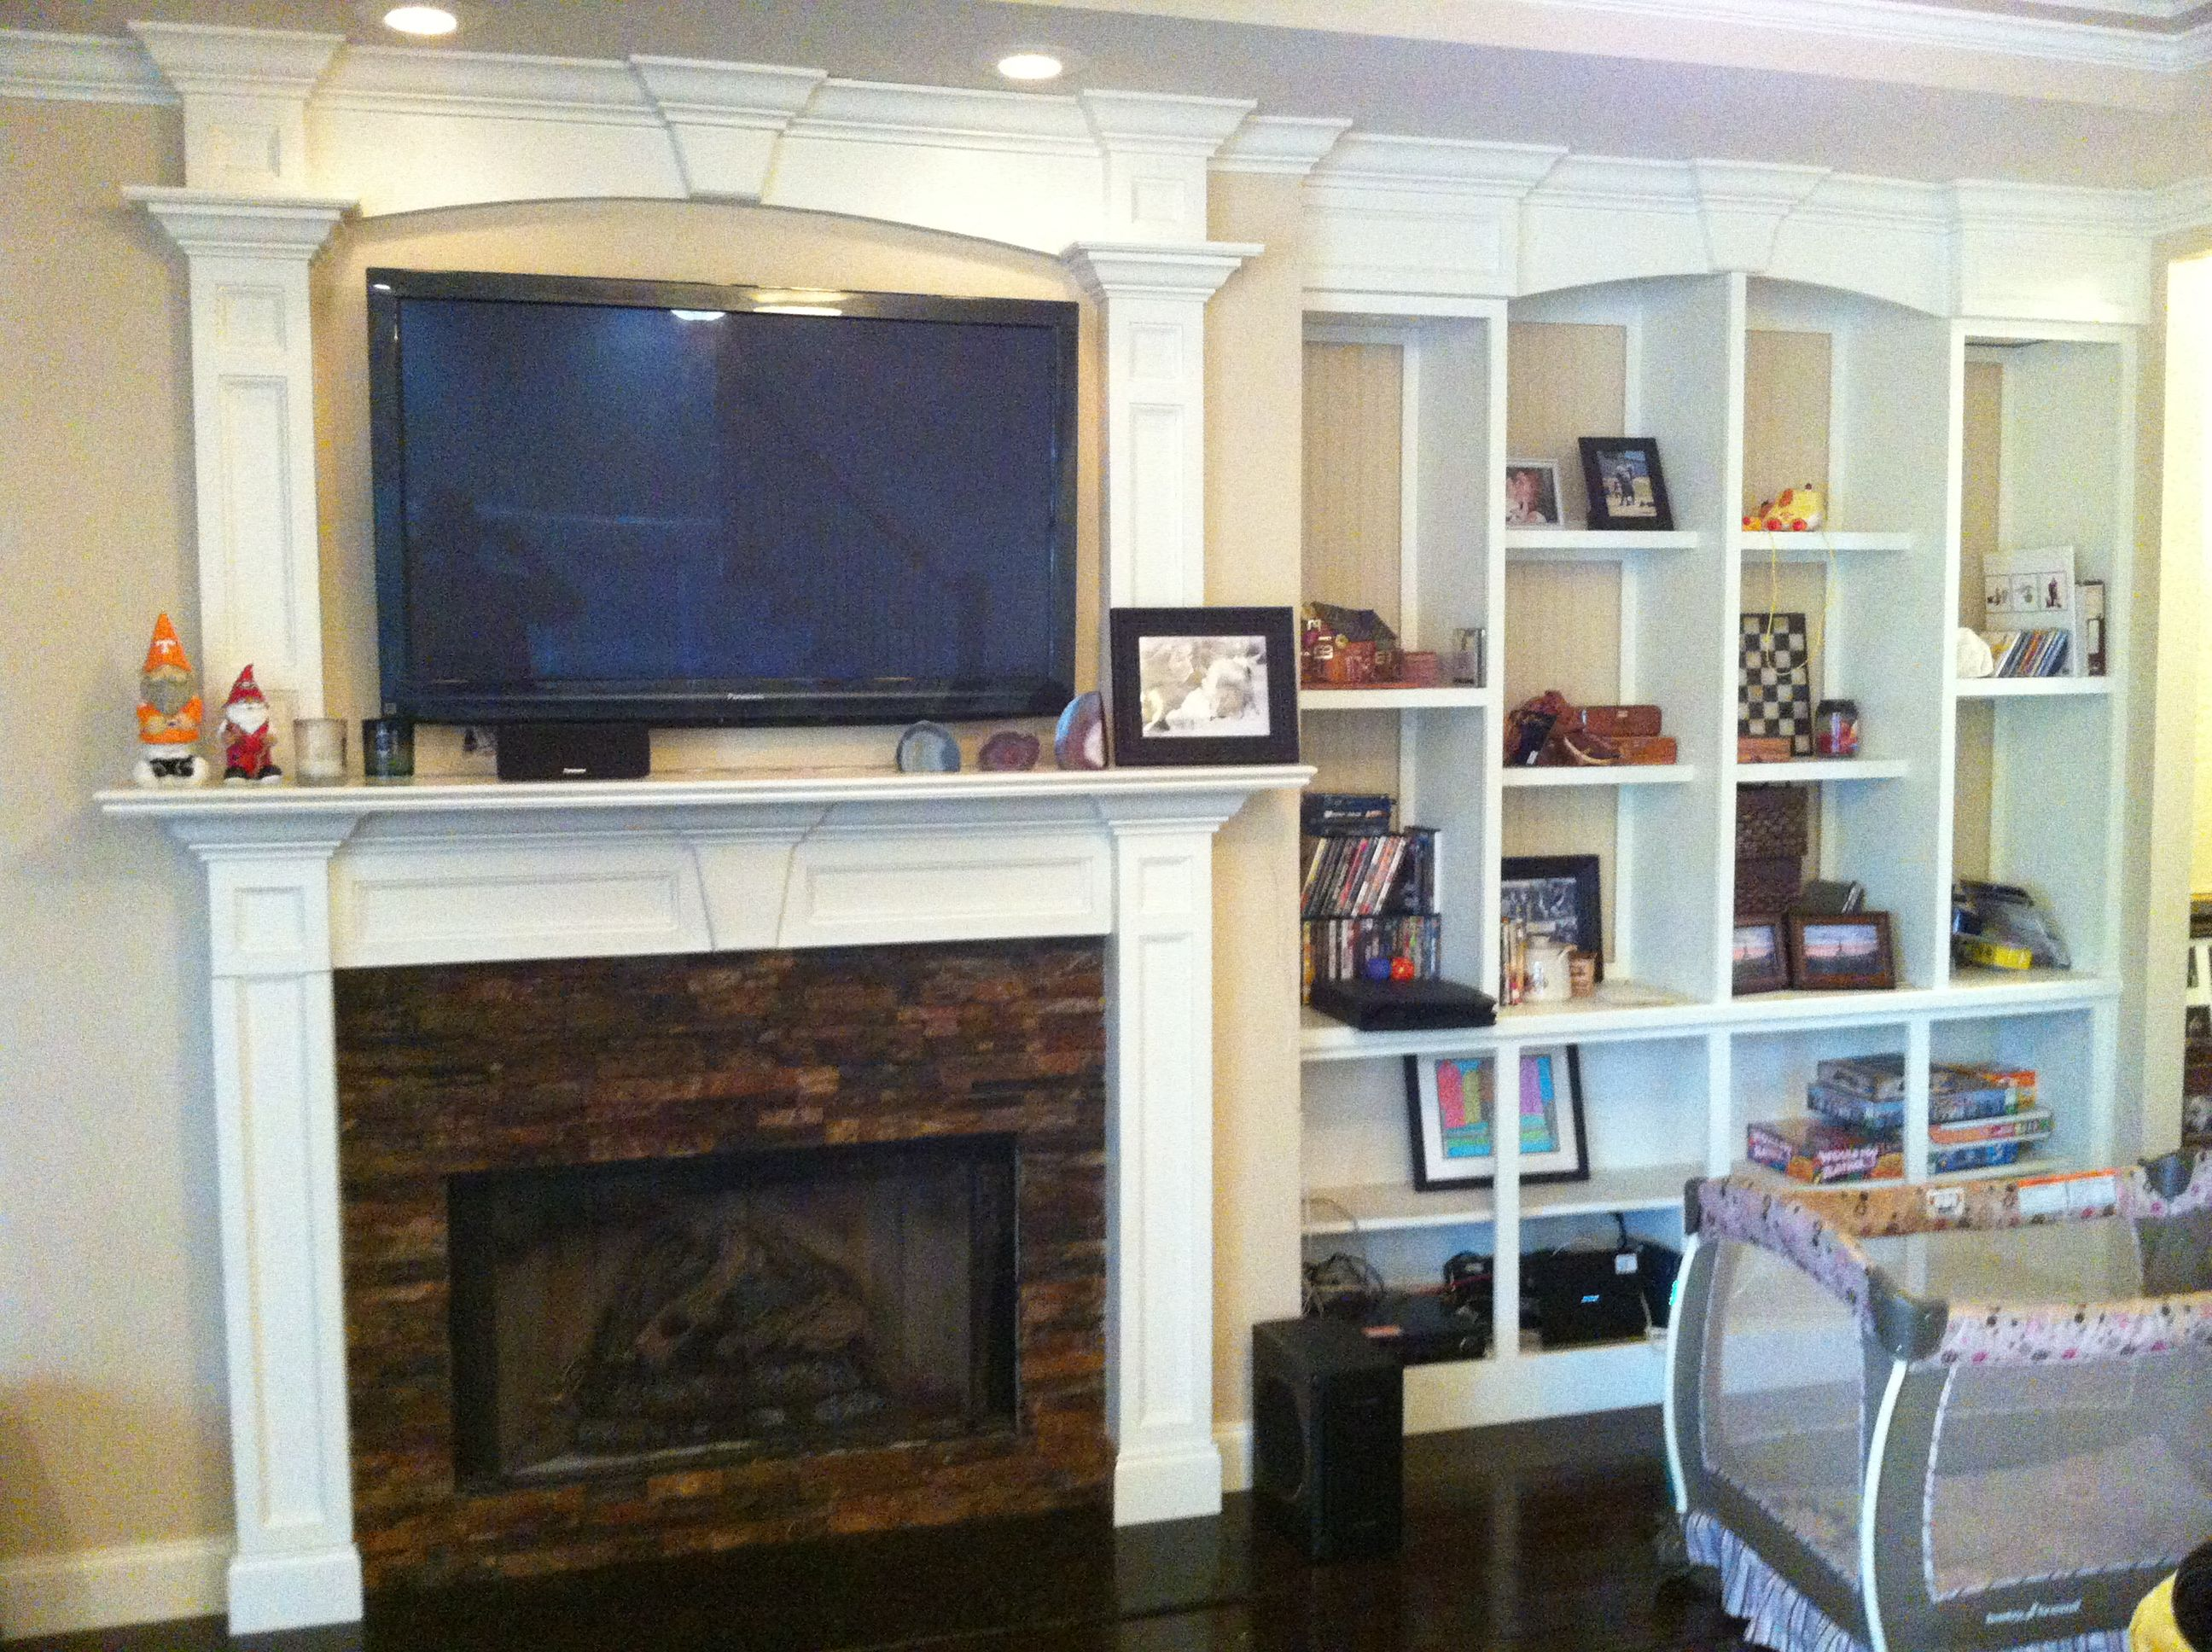 redid the fireplace double mantle crown molding and matching